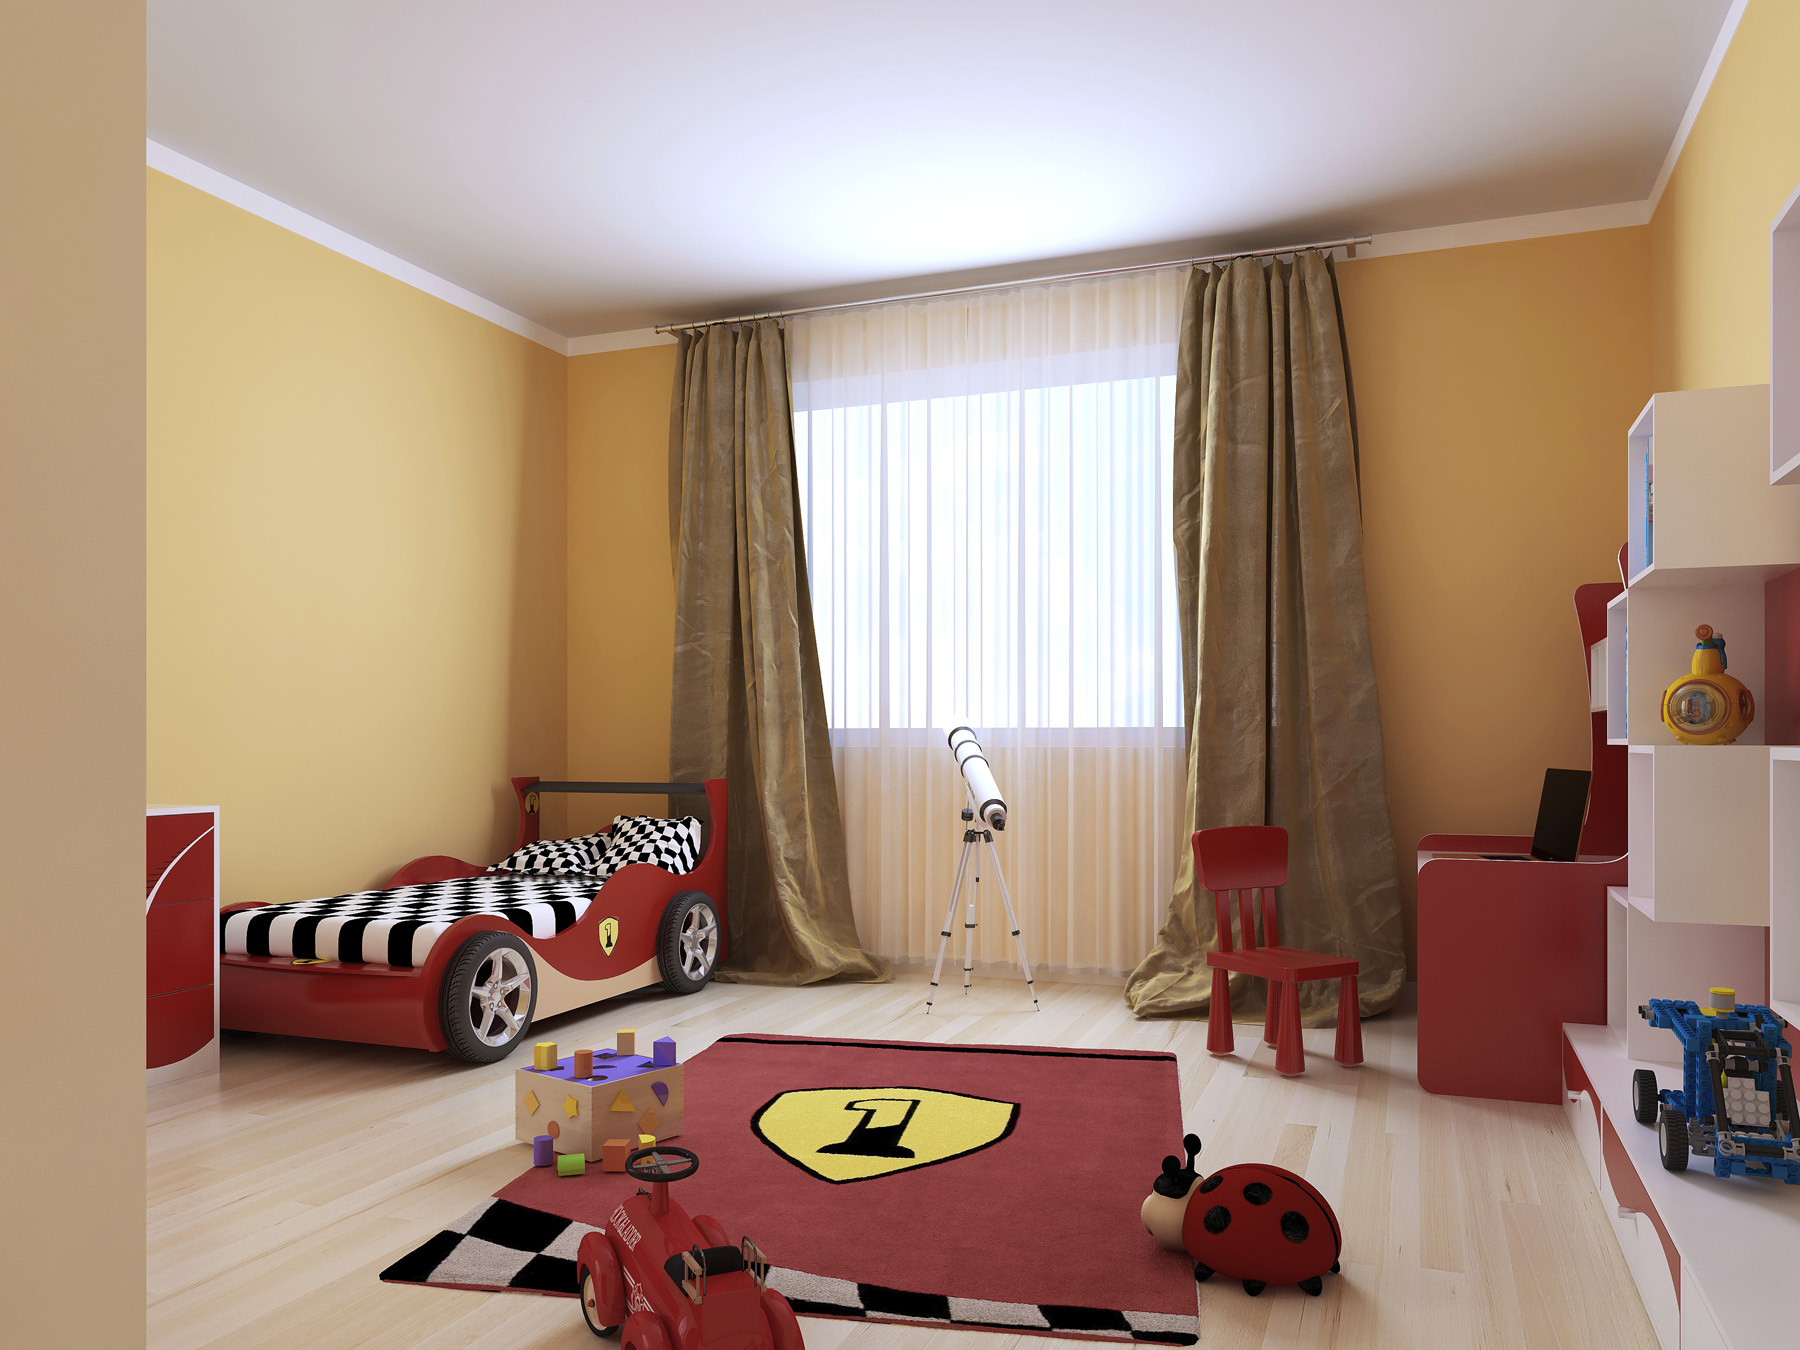 Children's room ideas small bed 51281